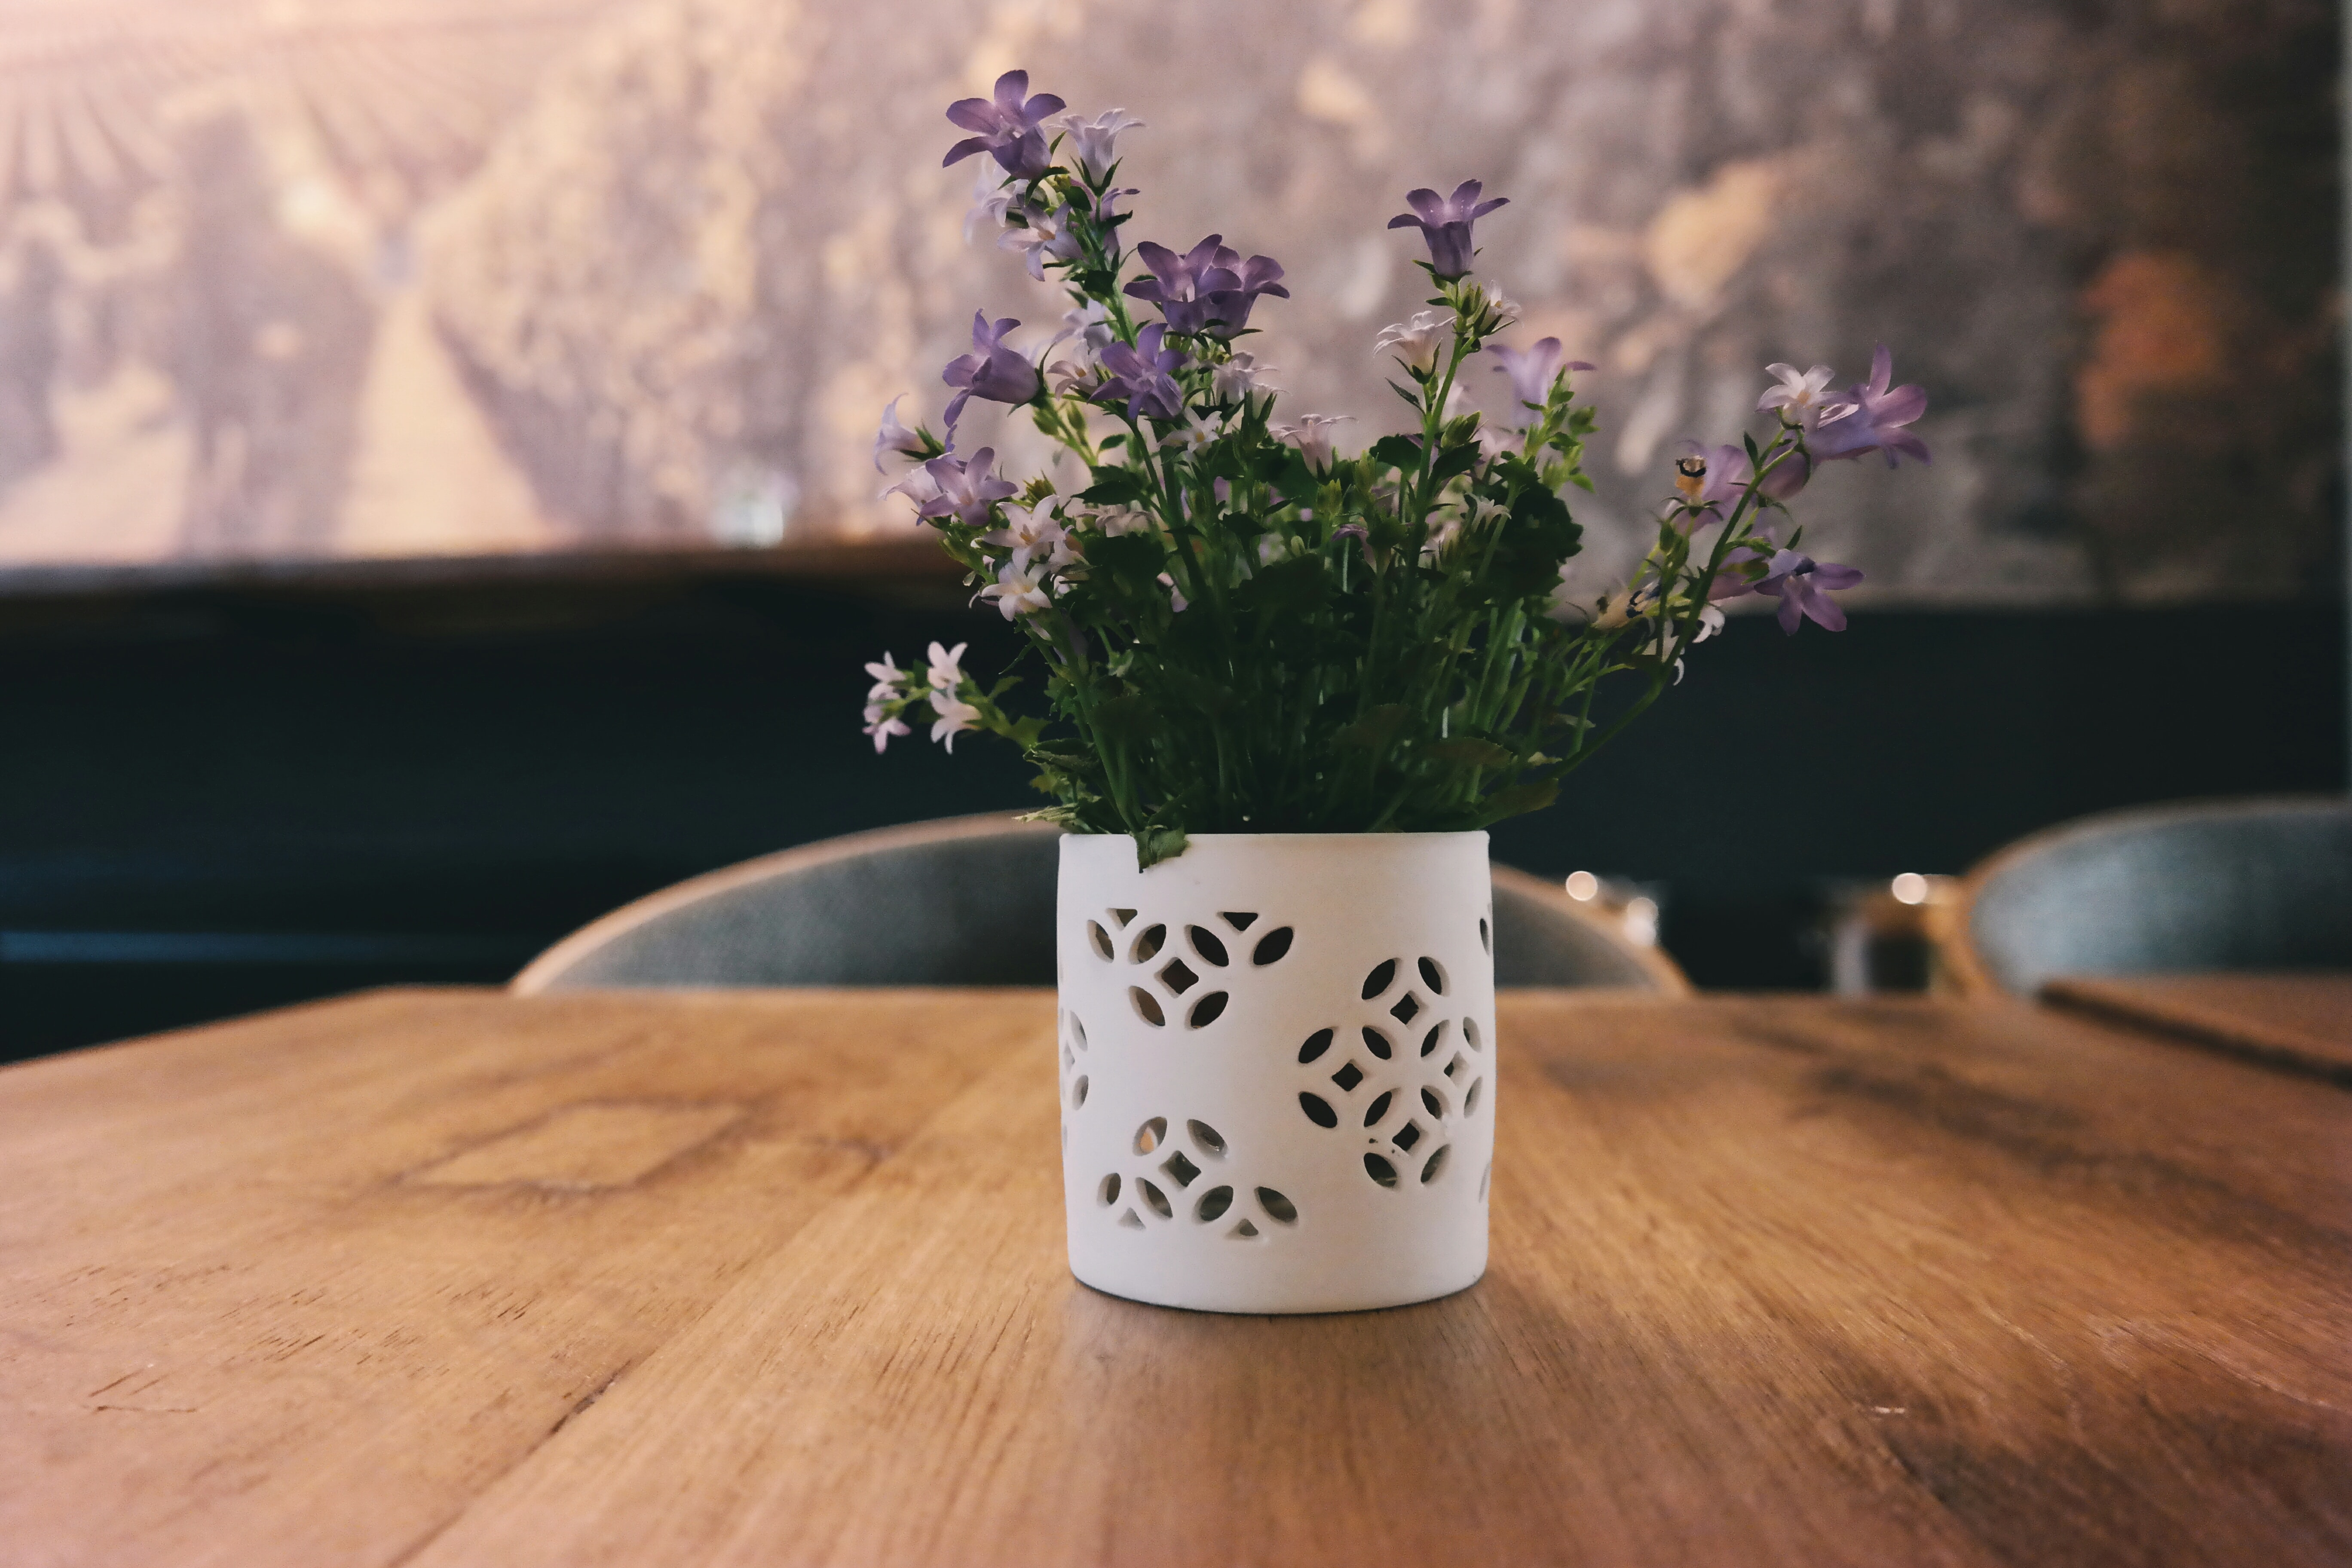 White and violet flowers in a white flowerpot on a wooden table